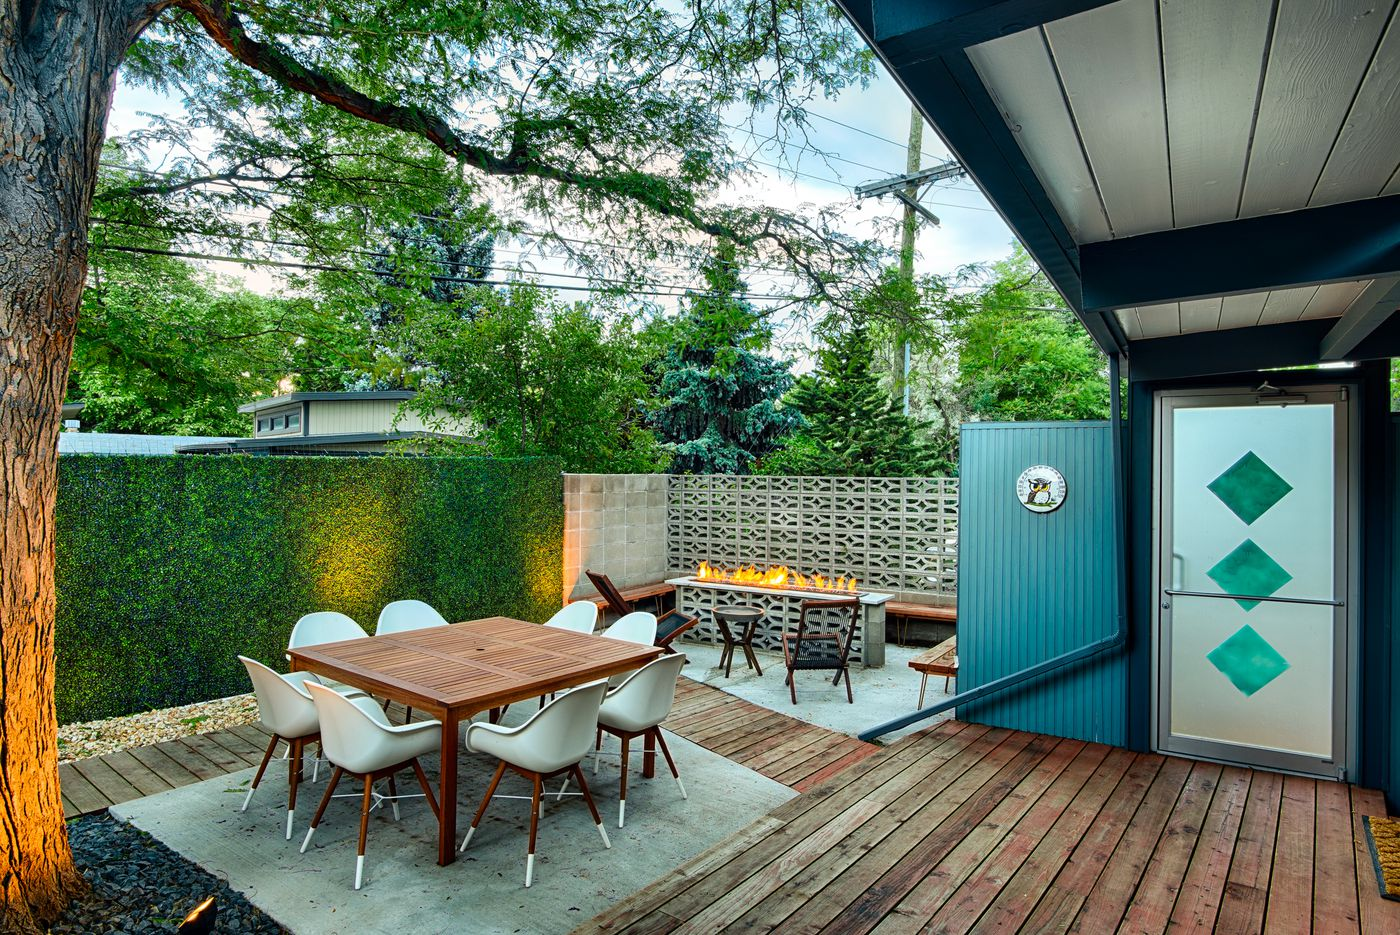 Renovating a midcentury modern home: 9 tips from an expert ...